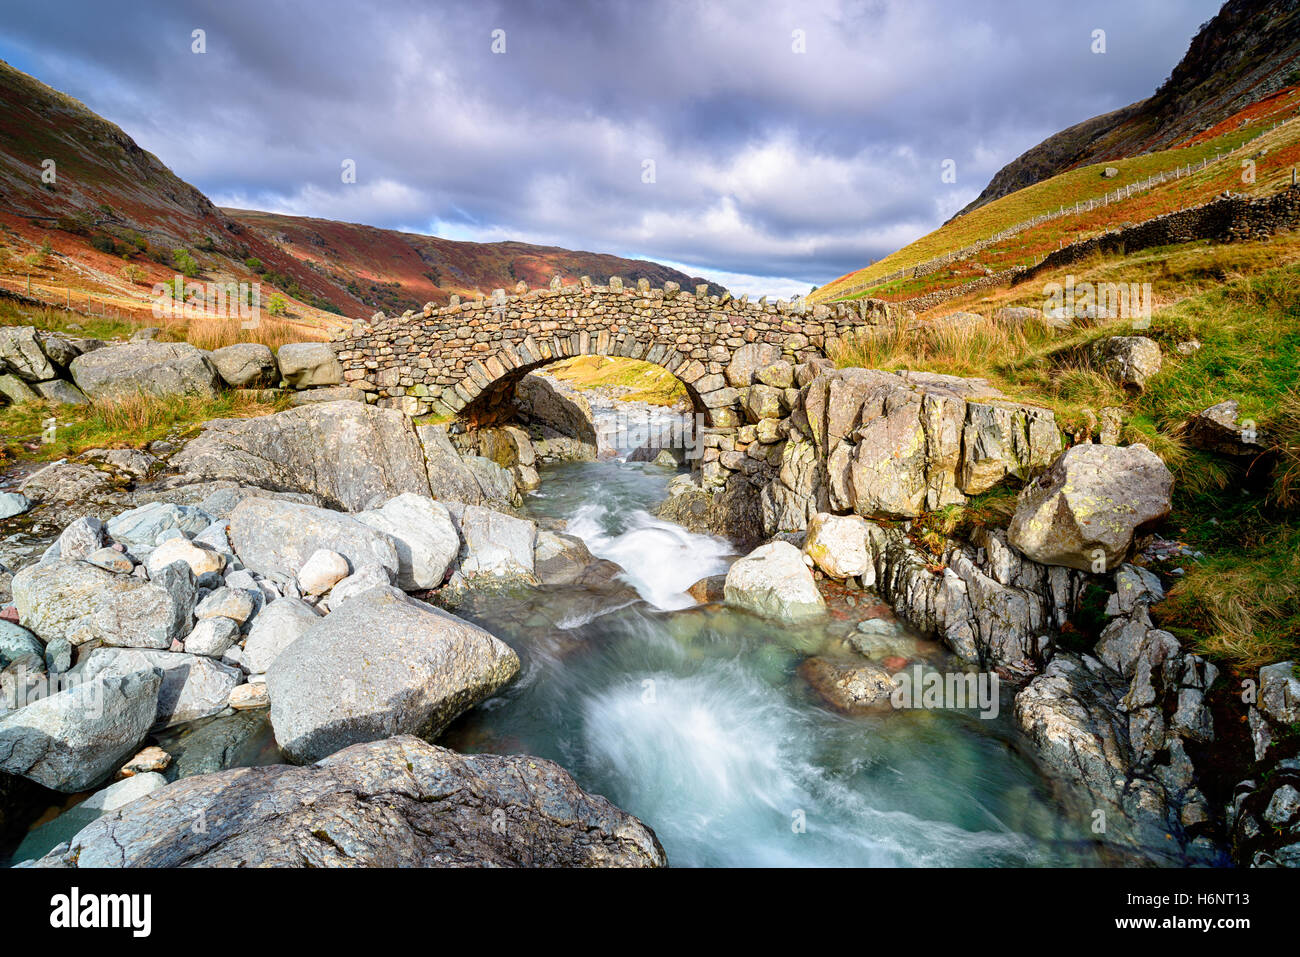 Stocley Bridge crossing the river Derwent near Seathwaite in the Lake District National Park in Cumbria. - Stock Image